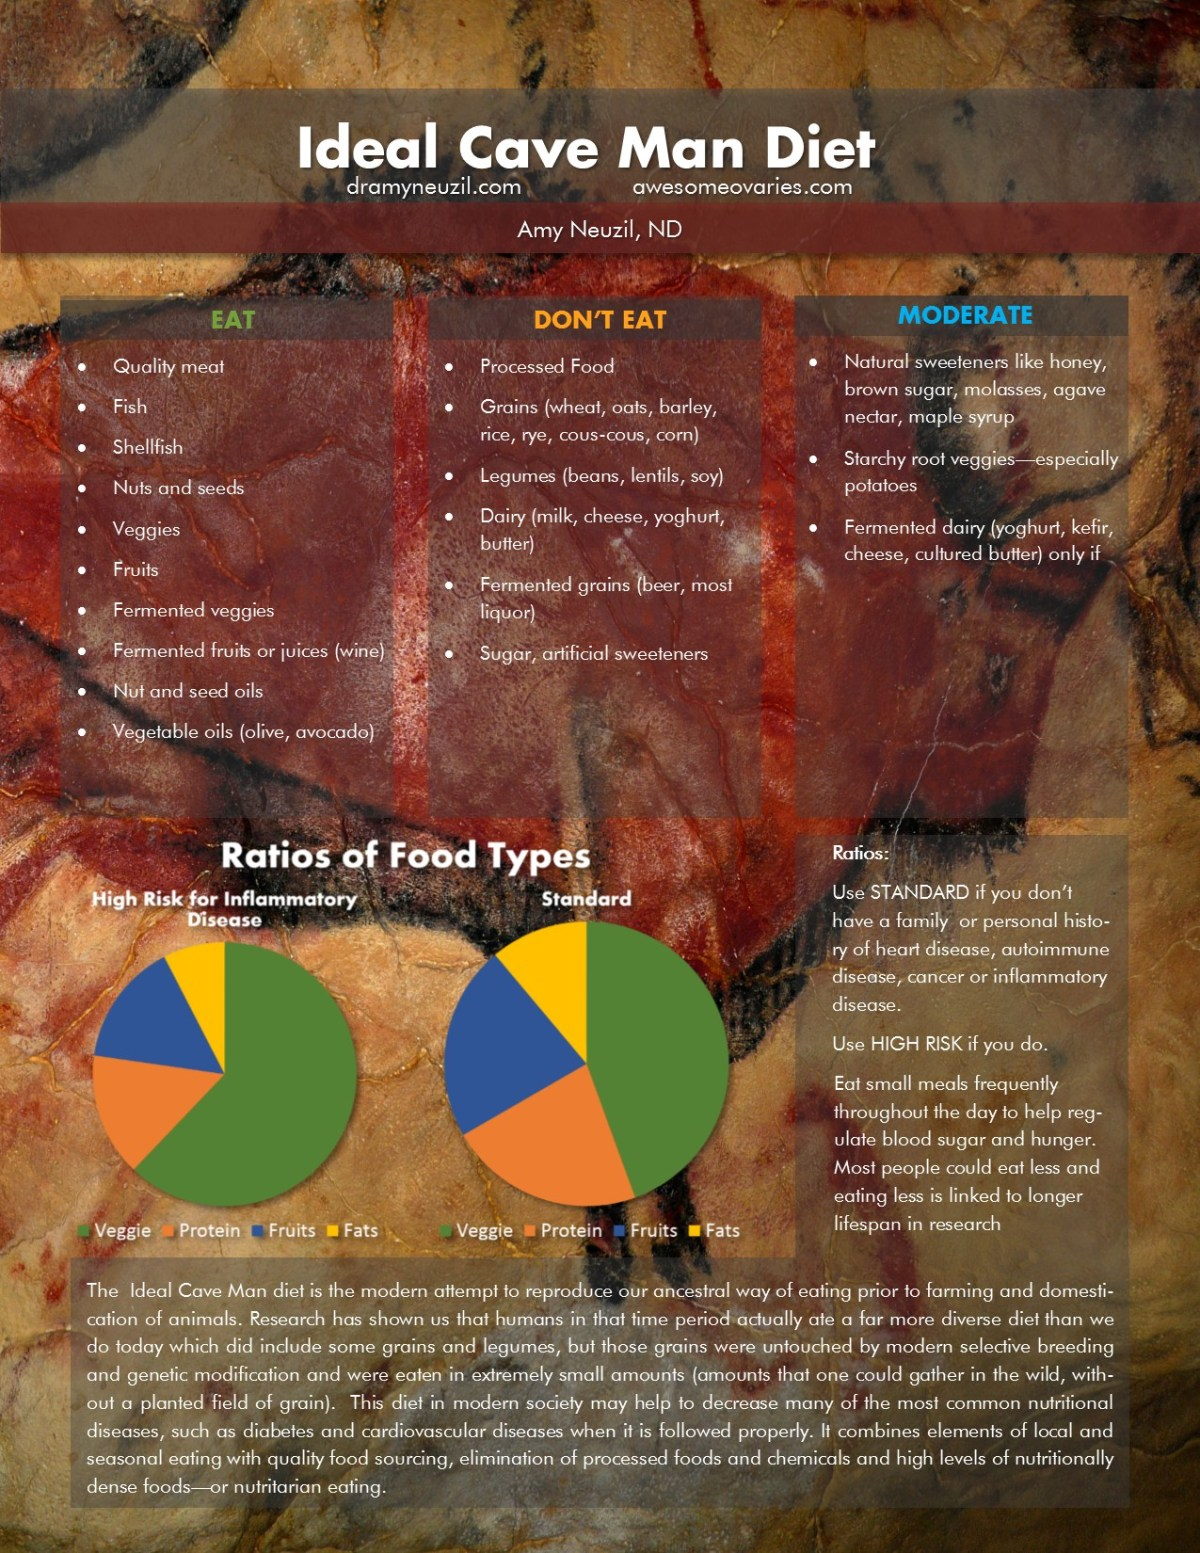 The Ideal Cave Man Diet helps give you all the great things about the paleo diet, with a little more flexability to take your family history into account.